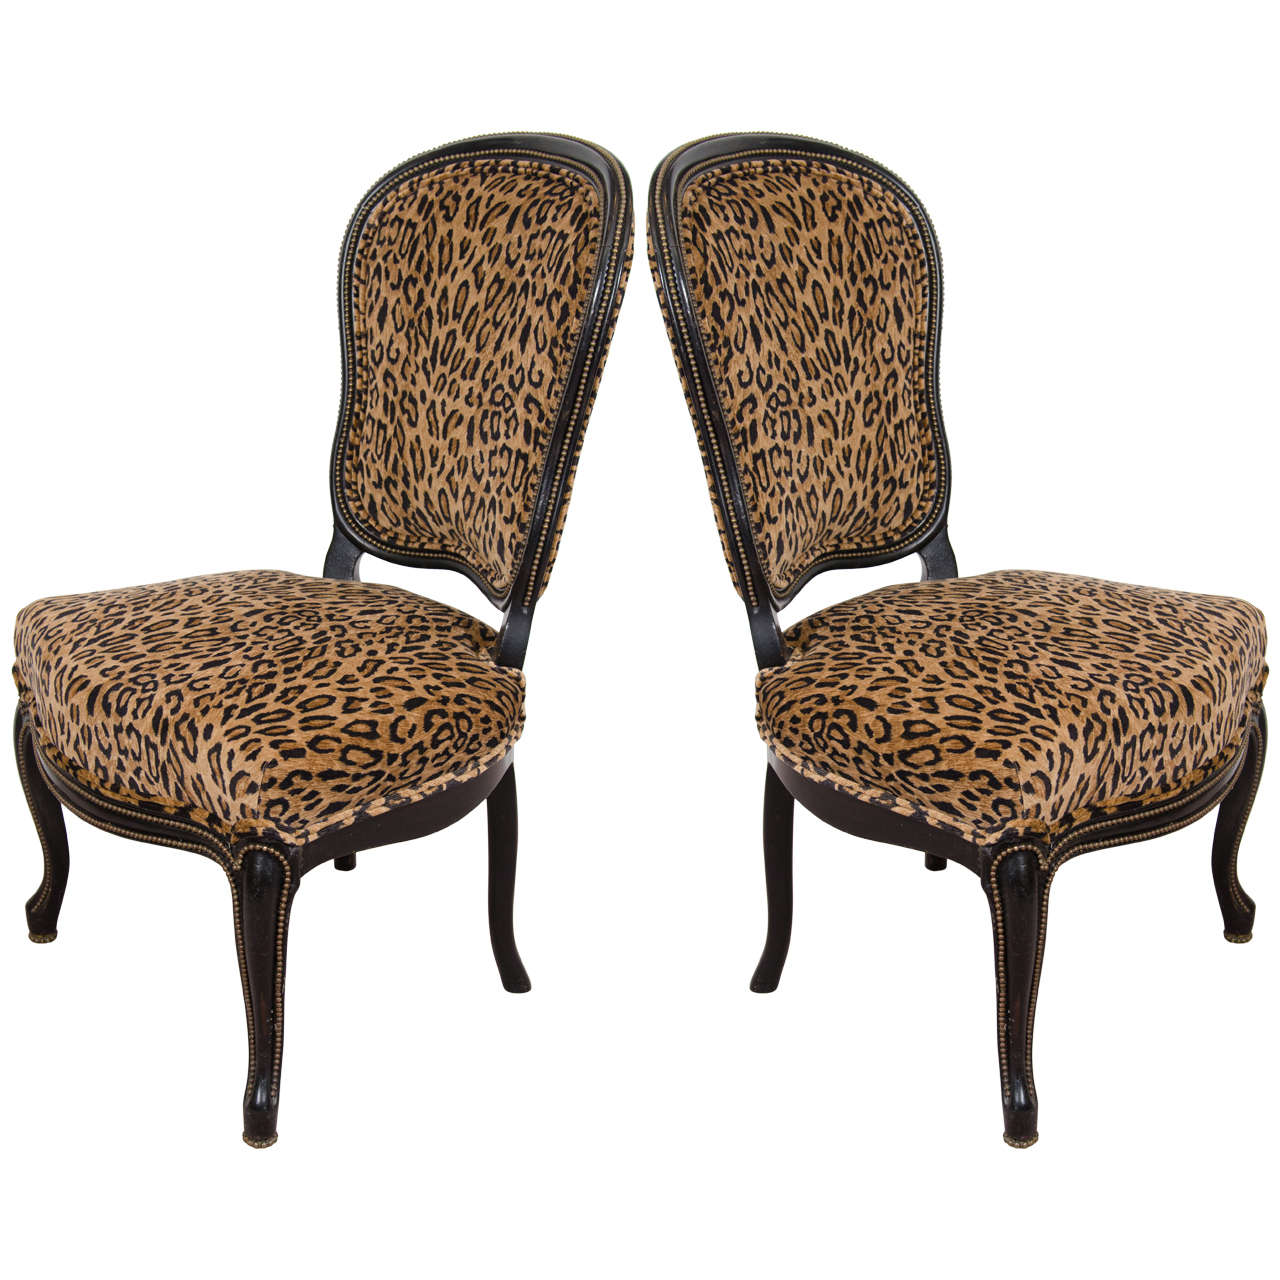 Pair Of Antique Ebonized Side Chairs With Velvet Leopard Print Upholstery At 1stdibs